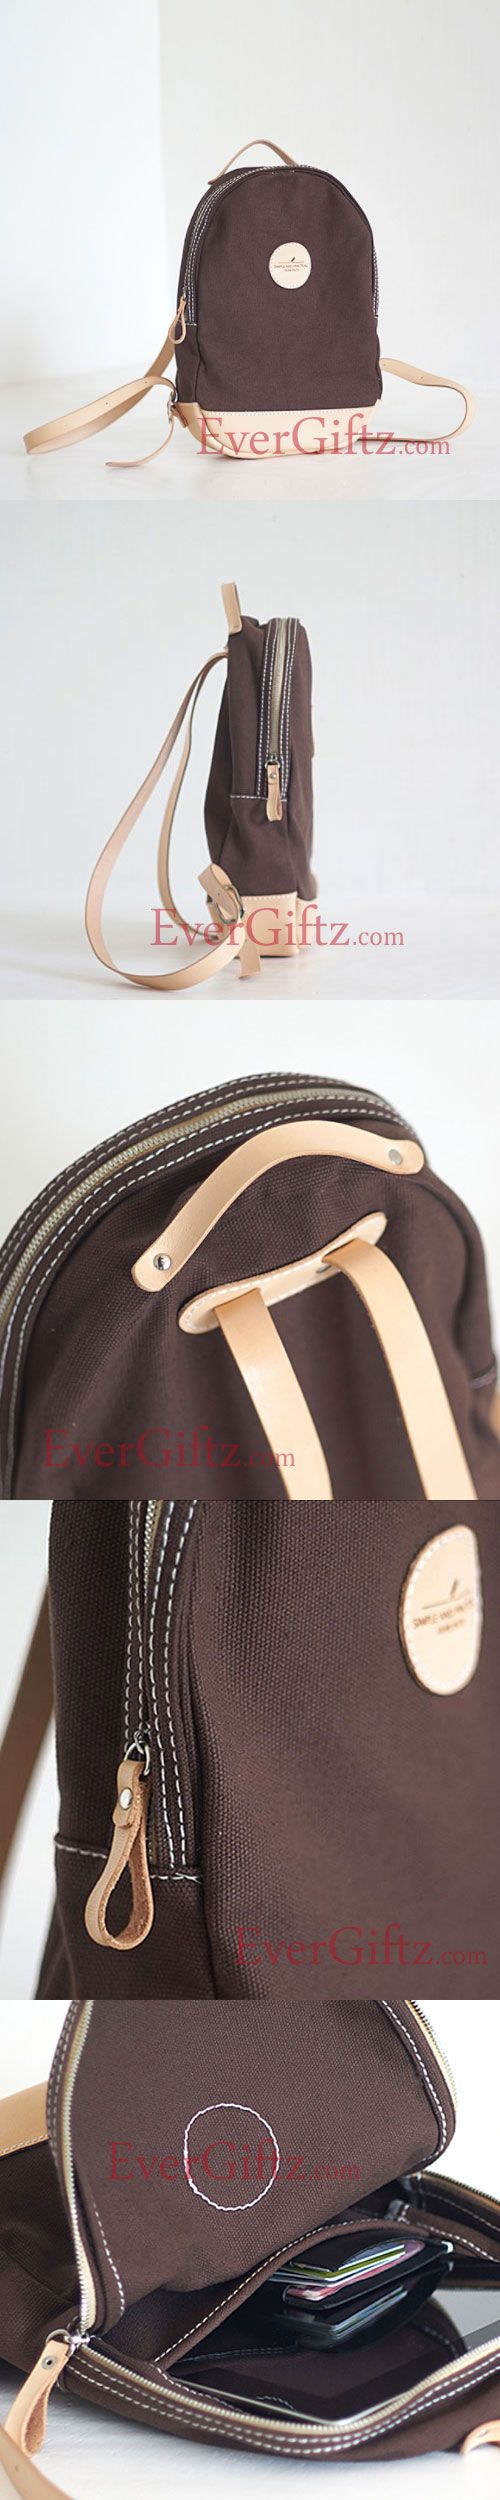 Genuine vintage handmade shoulder bag crossbody bag handbag